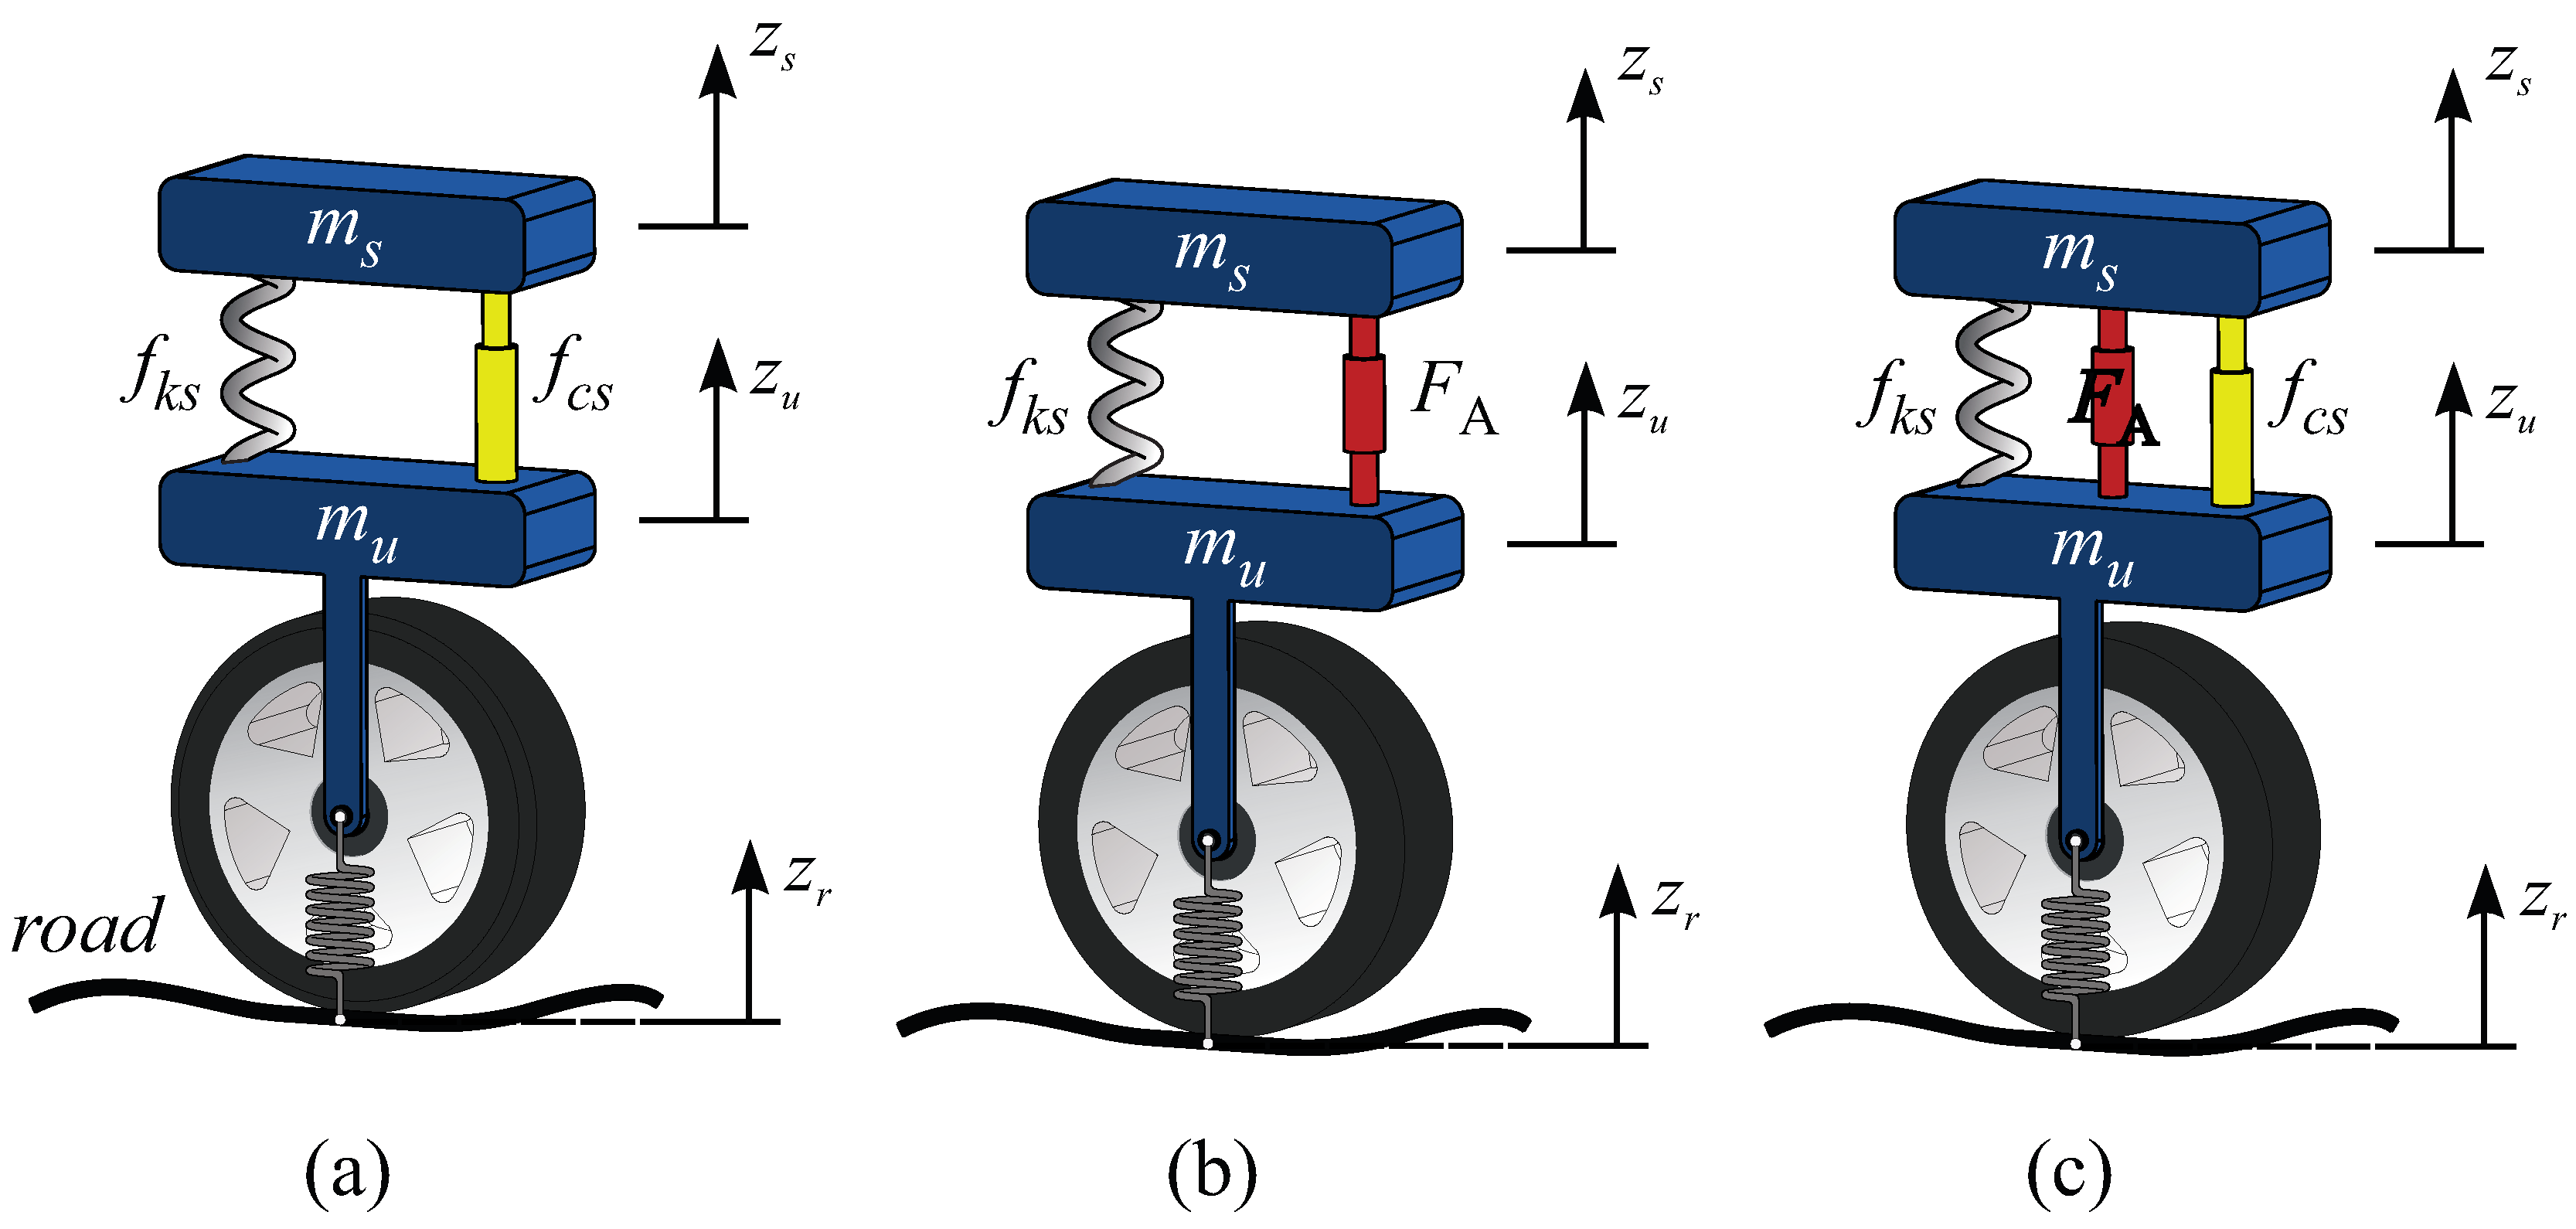 Actuators | Free Full-Text | An Active Vehicle Suspension Control Approach  with Electromagnetic and Hydraulic Actuators